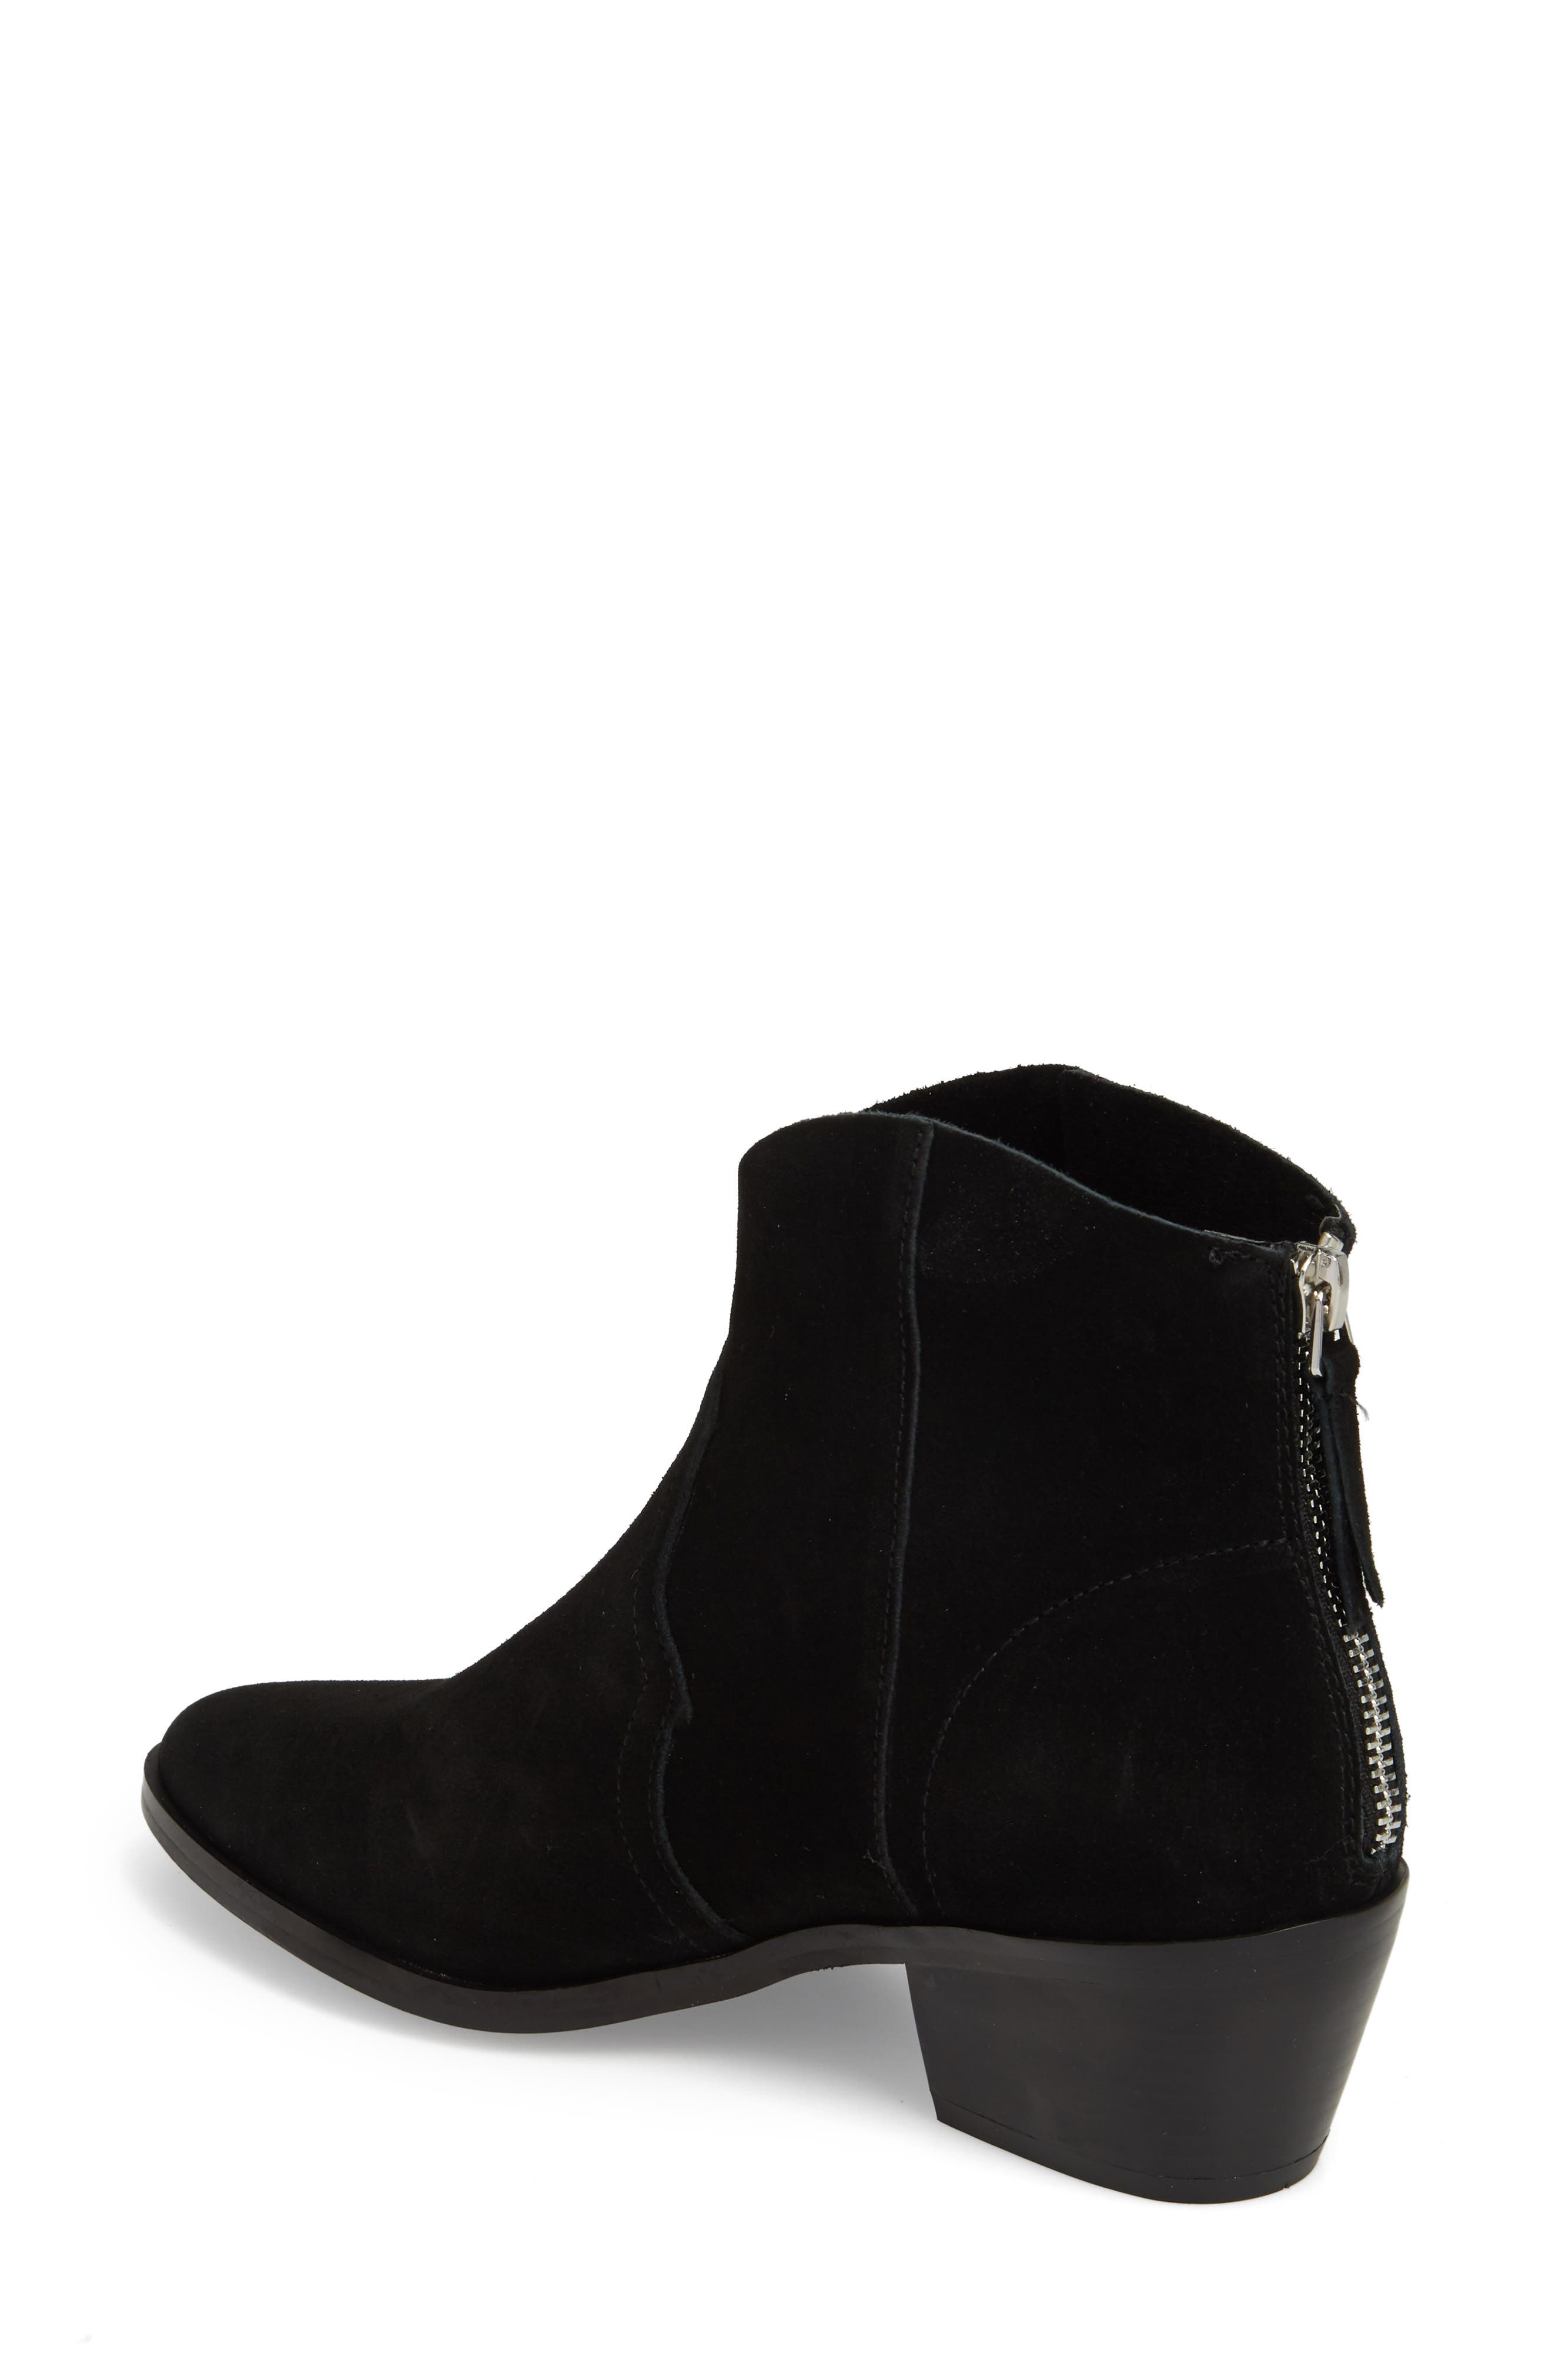 Betty Western Bootie,                             Alternate thumbnail 2, color,                             Black